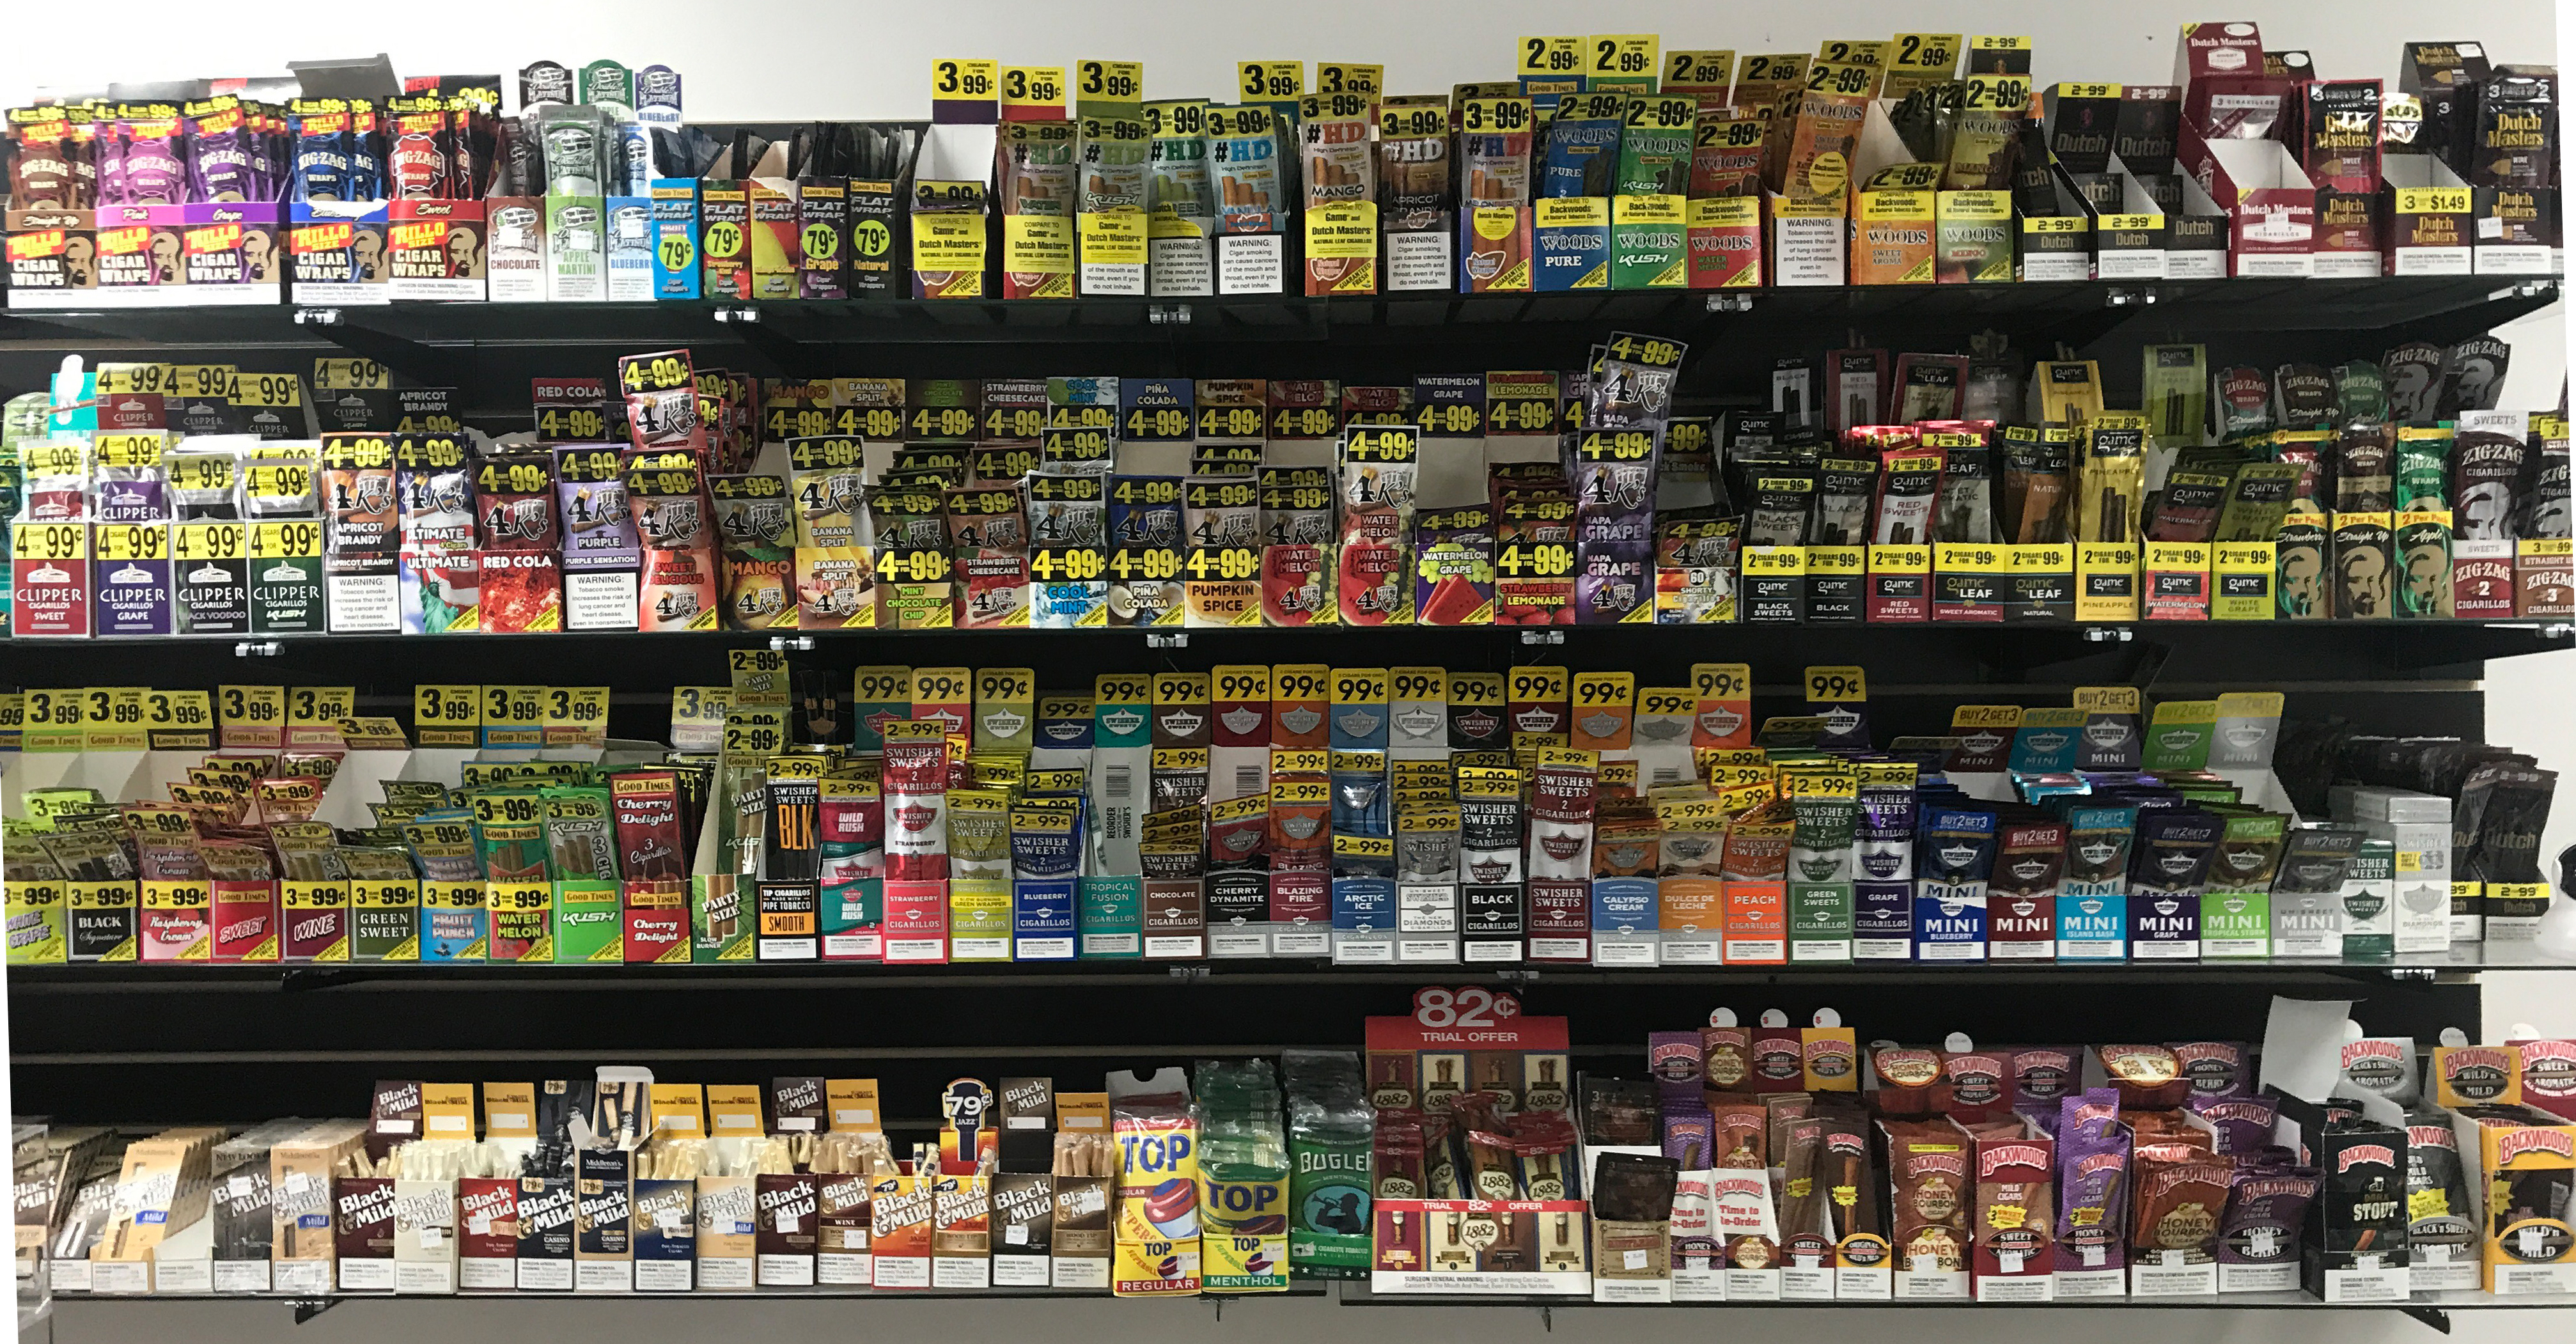 There S No Beating Our Smoke Shop S Selection Or Prices